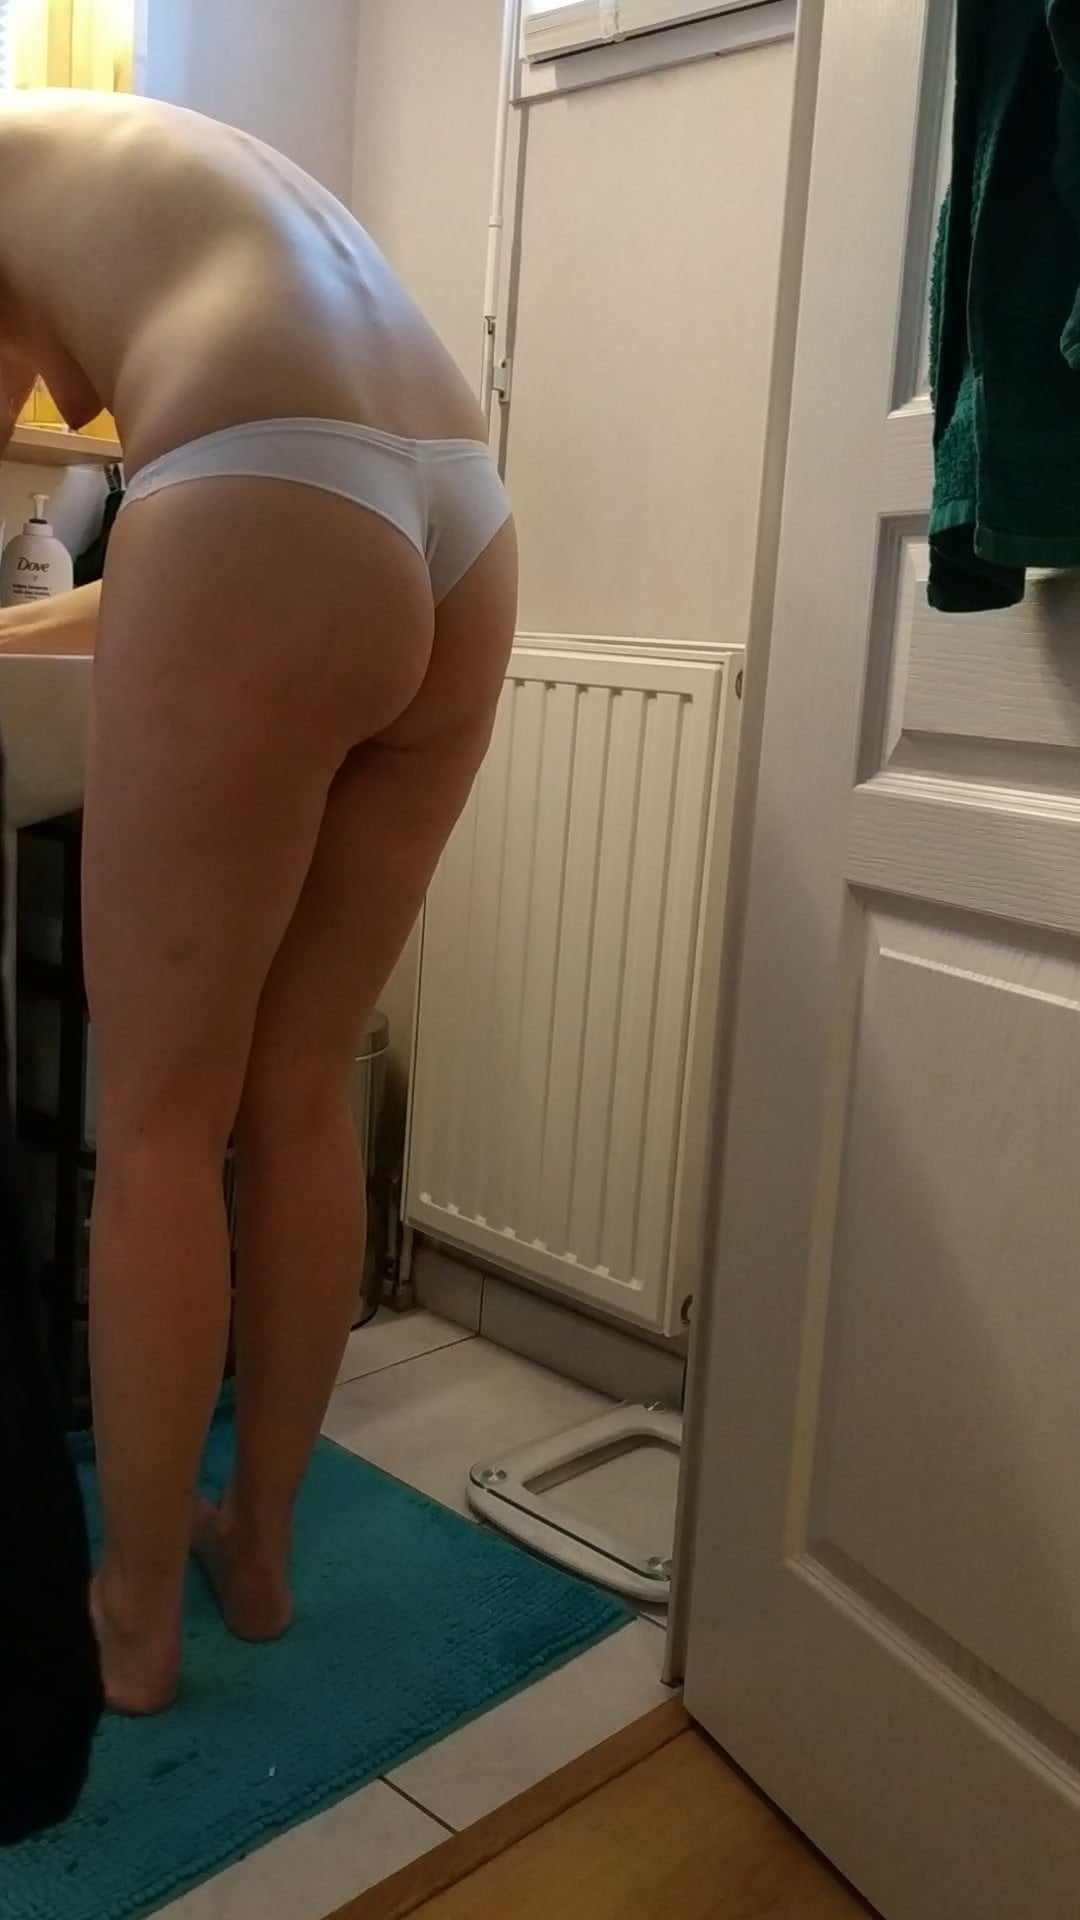 Thong ass butt voyeur in bathroom french